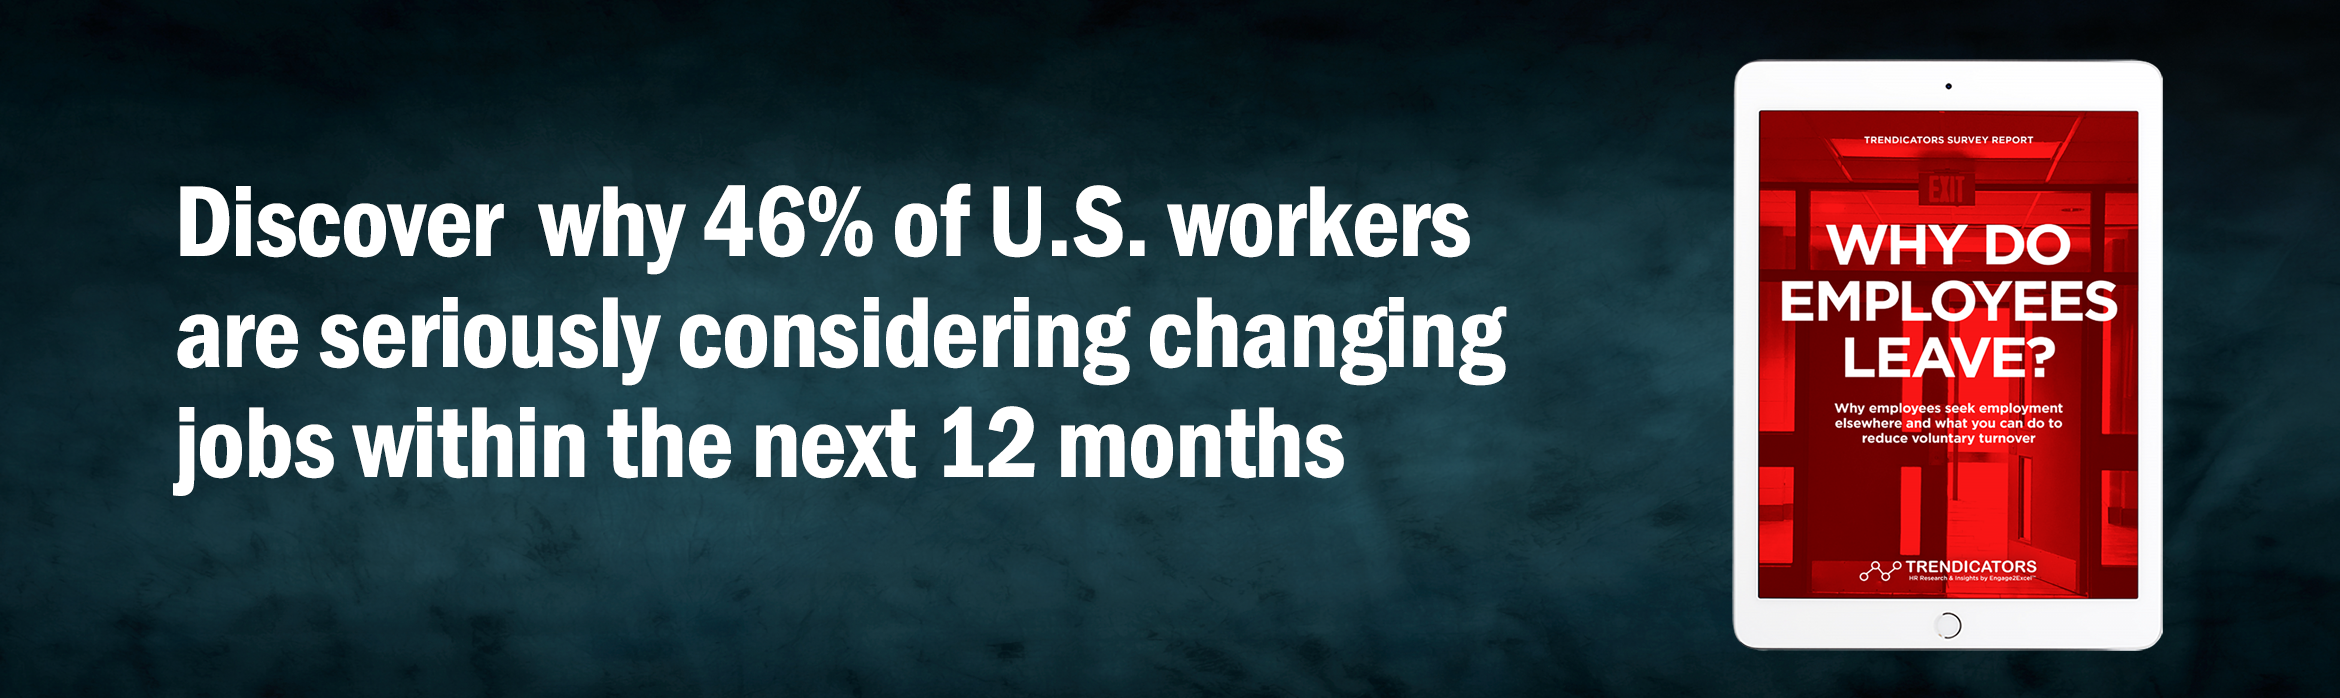 Why are 46% of U.S. workers changing jobs within the next 12 months